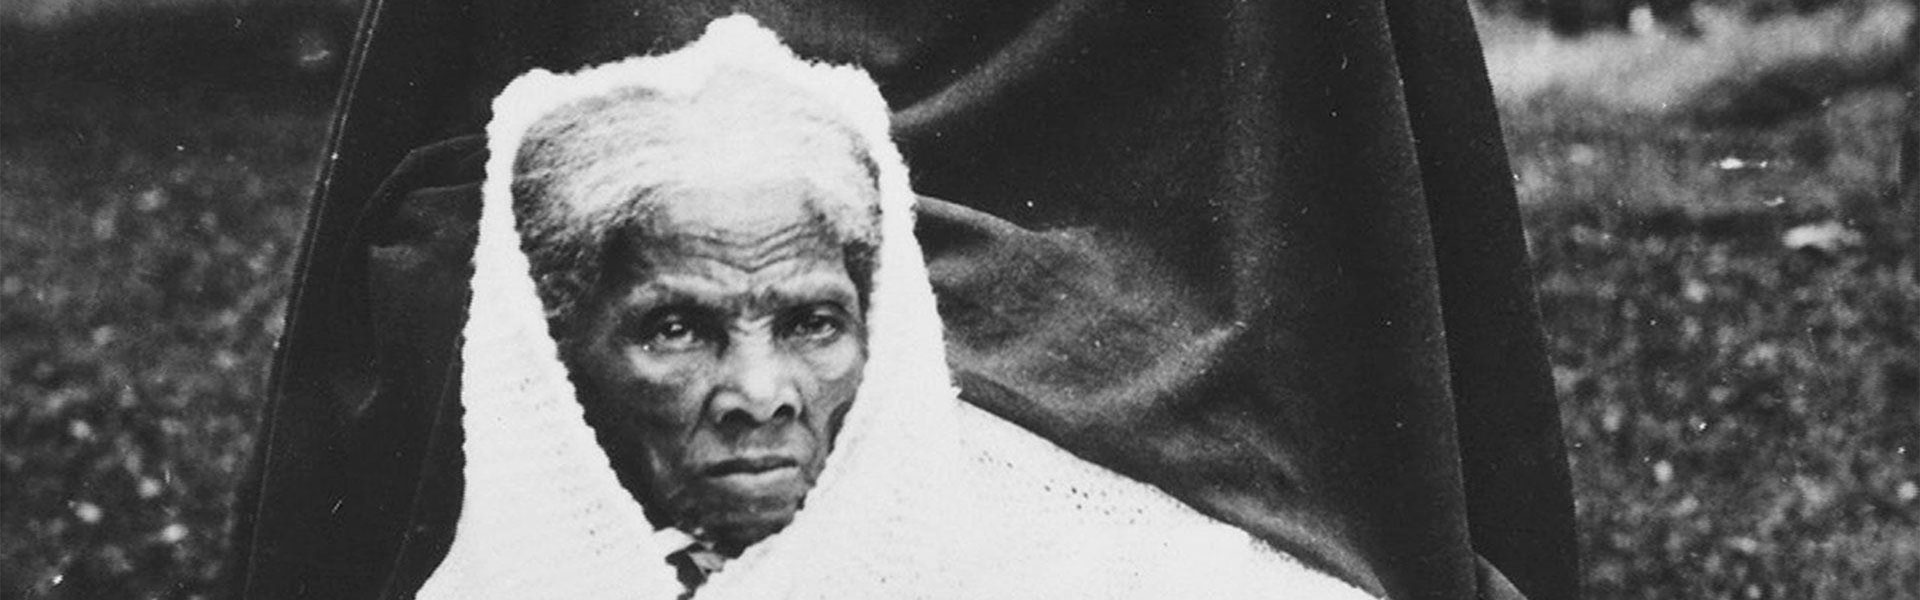 Harriet Tubman, heroic abolitionist